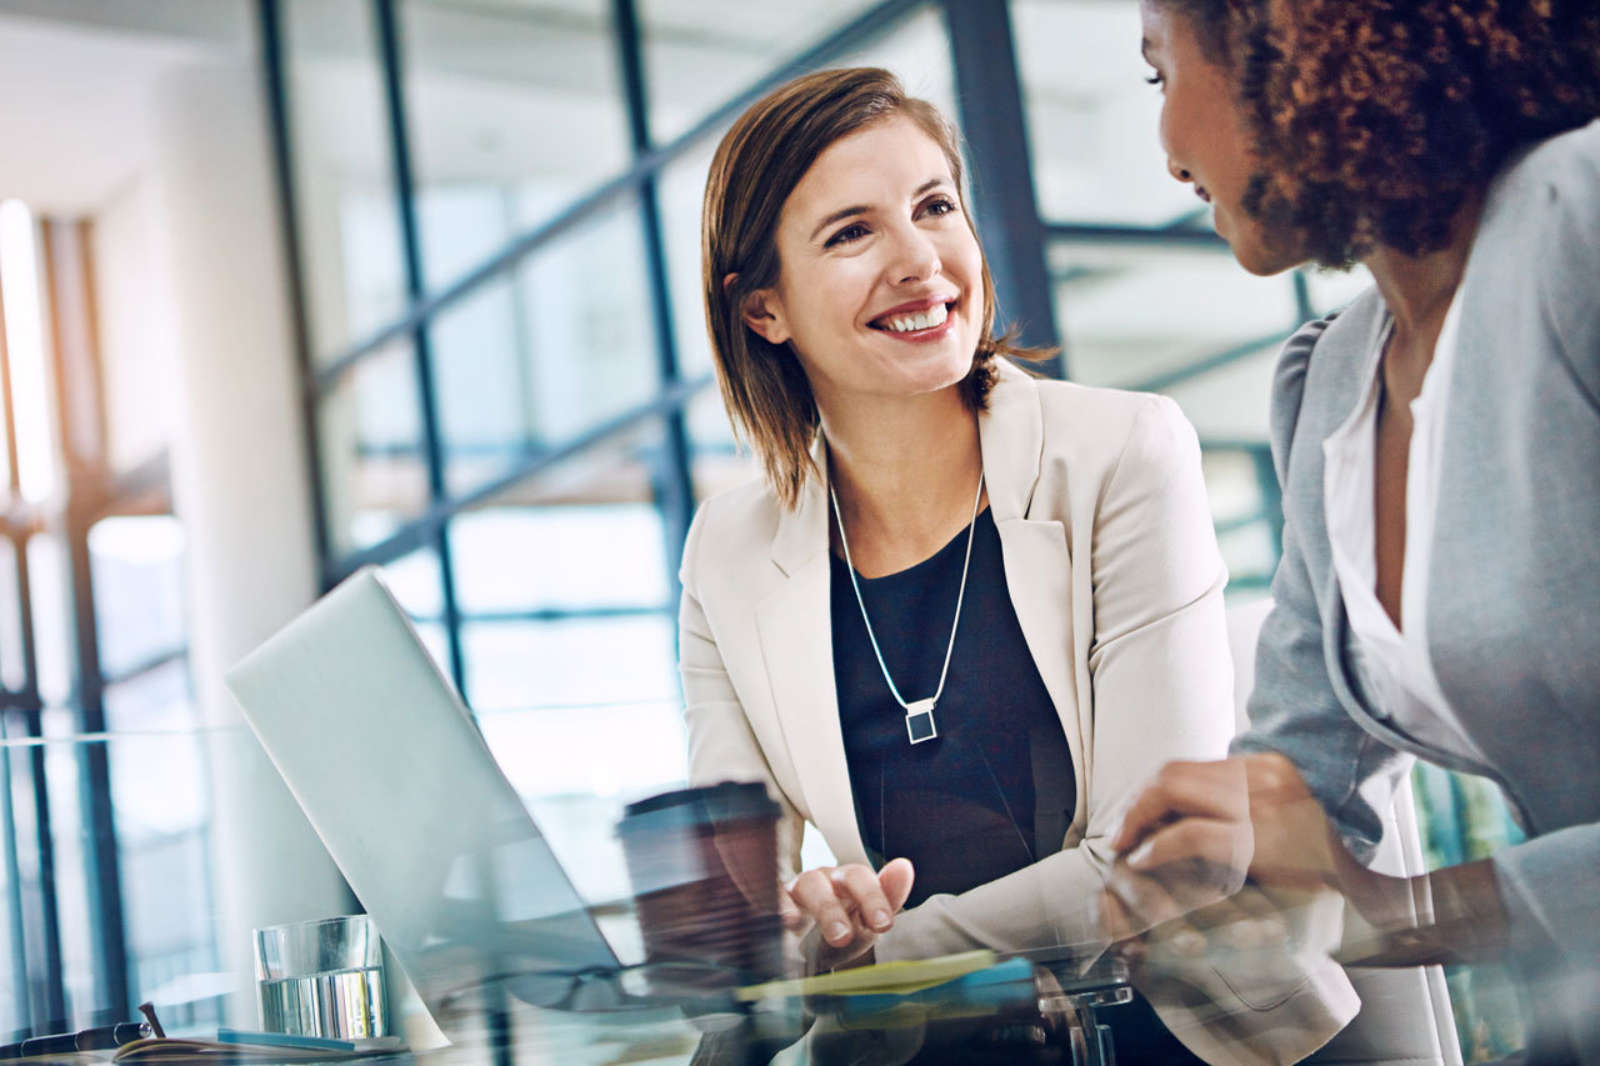 Confident woman smiles at colleague at work effective productive collaboration meeting